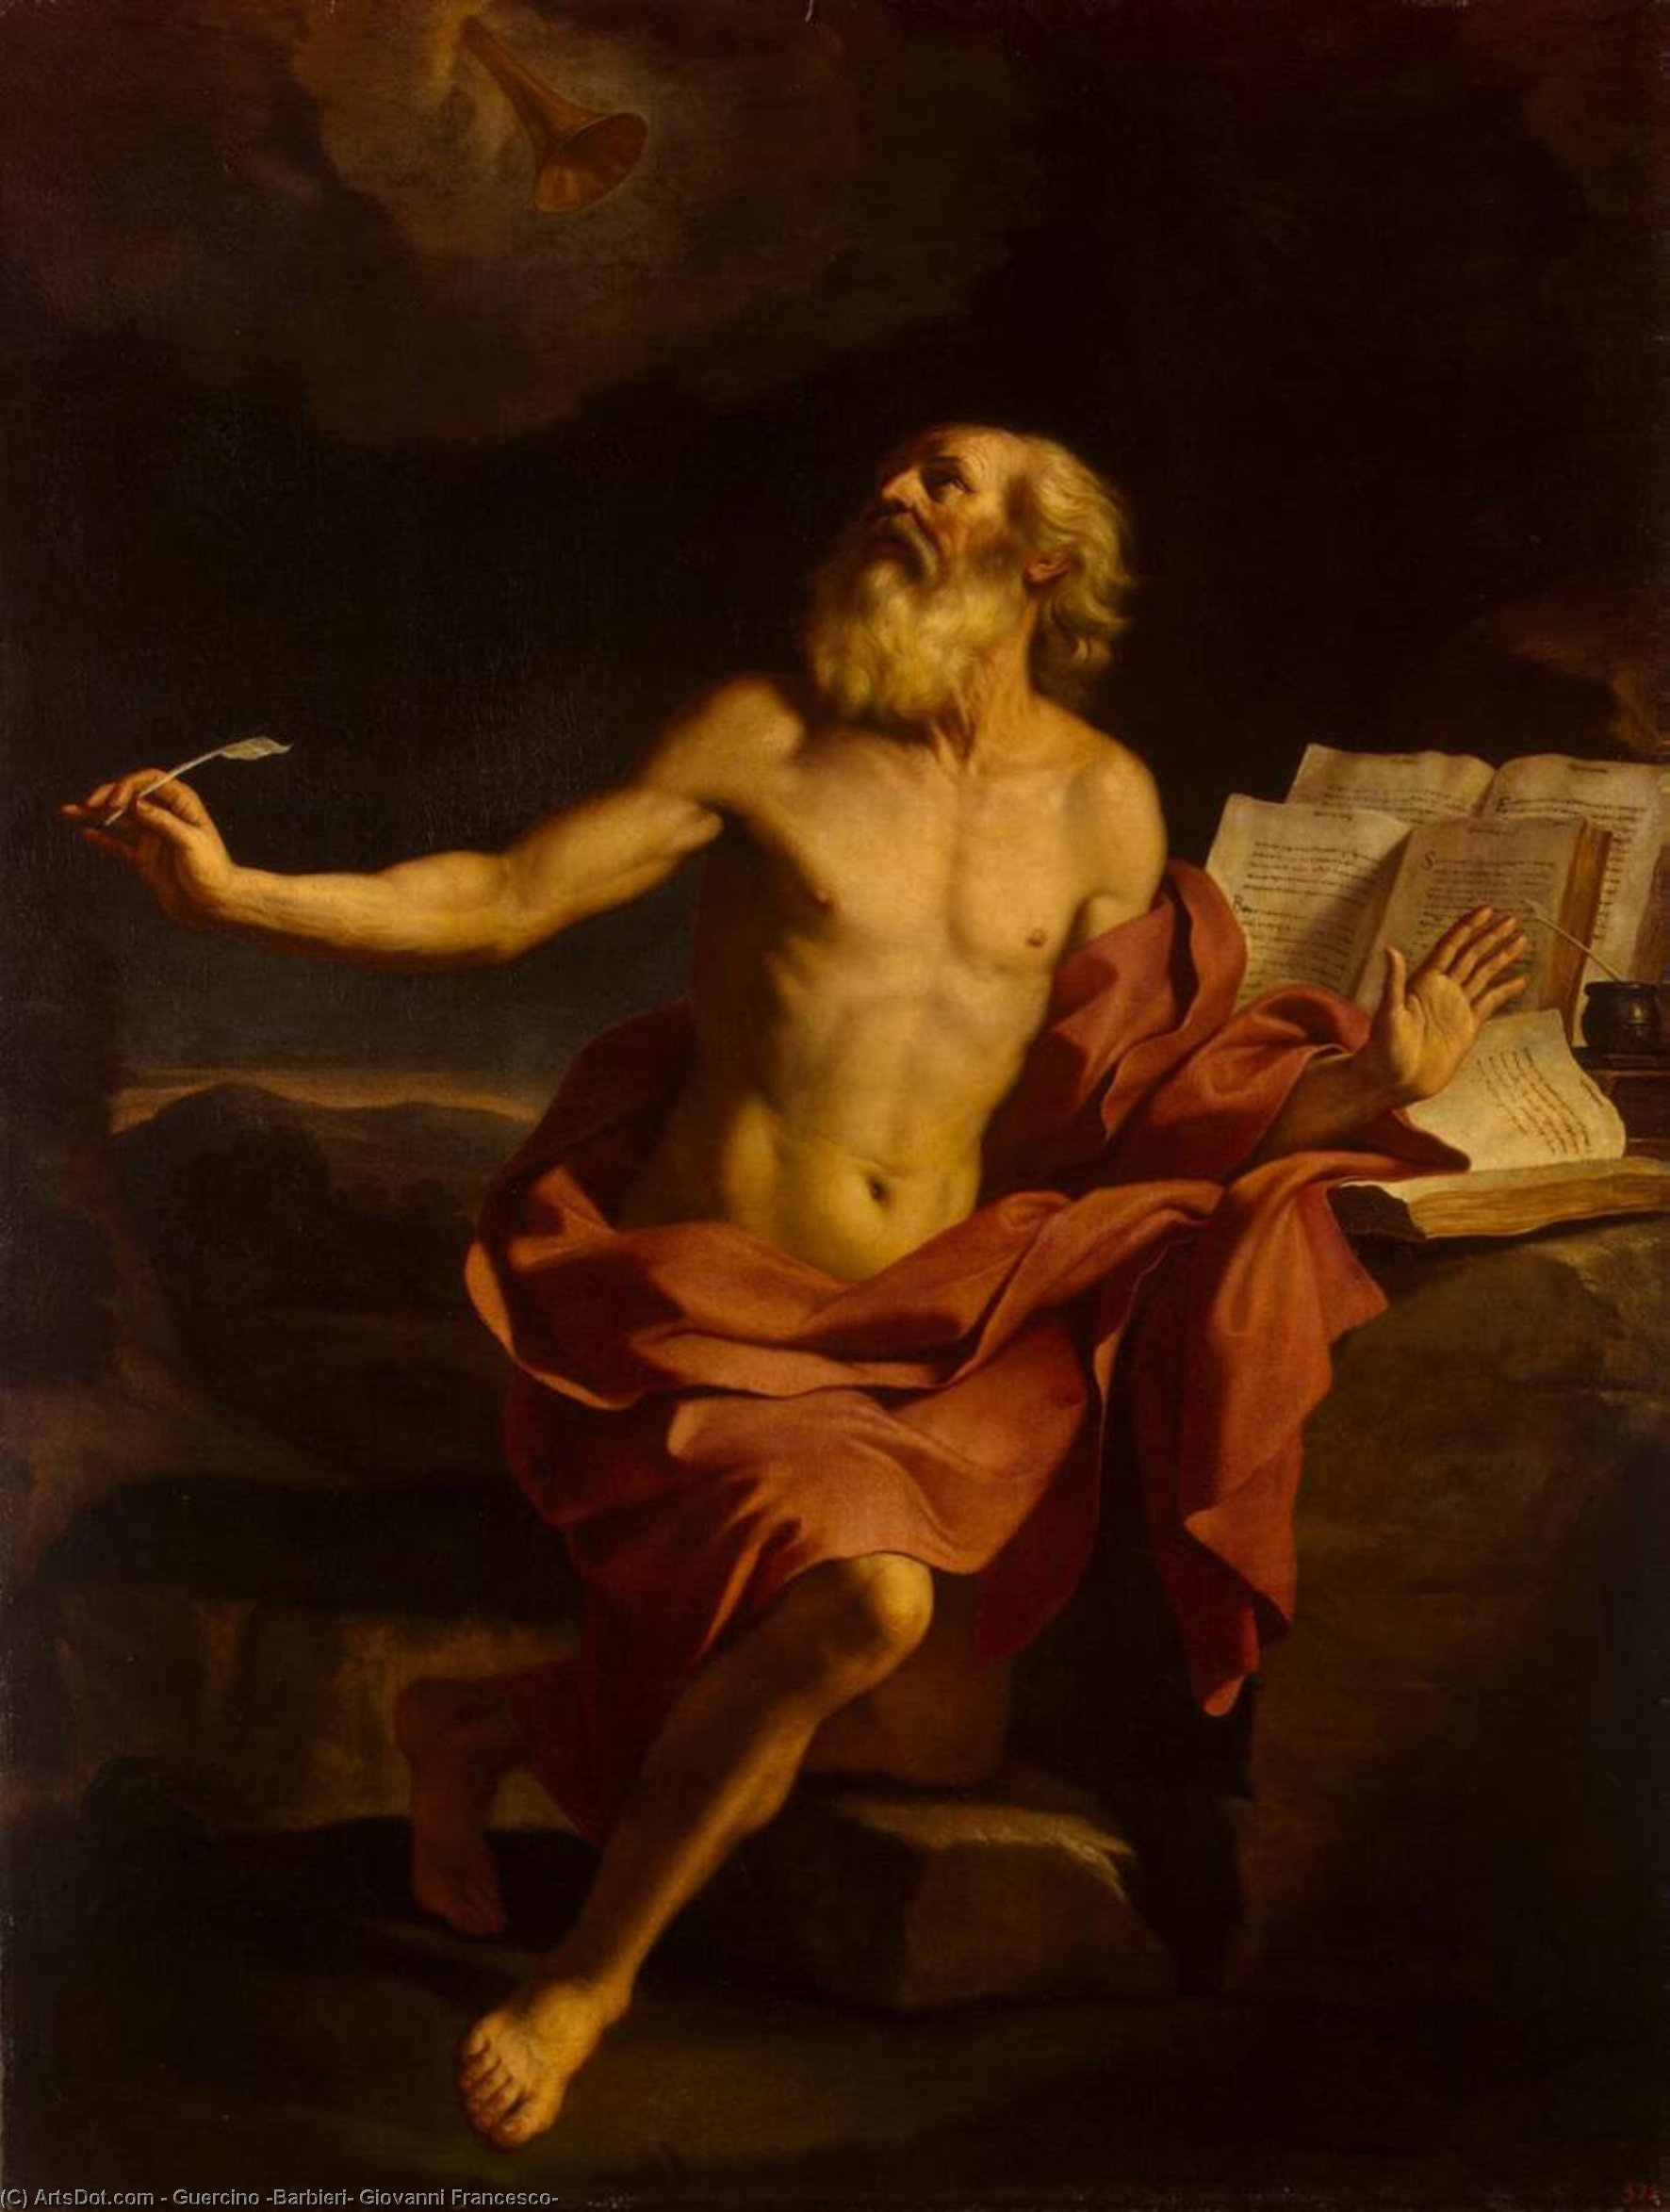 St Jerome in the Wilderness, Oil by Guercino (Barbieri, Giovanni Francesco) (1591-1666, Italy)